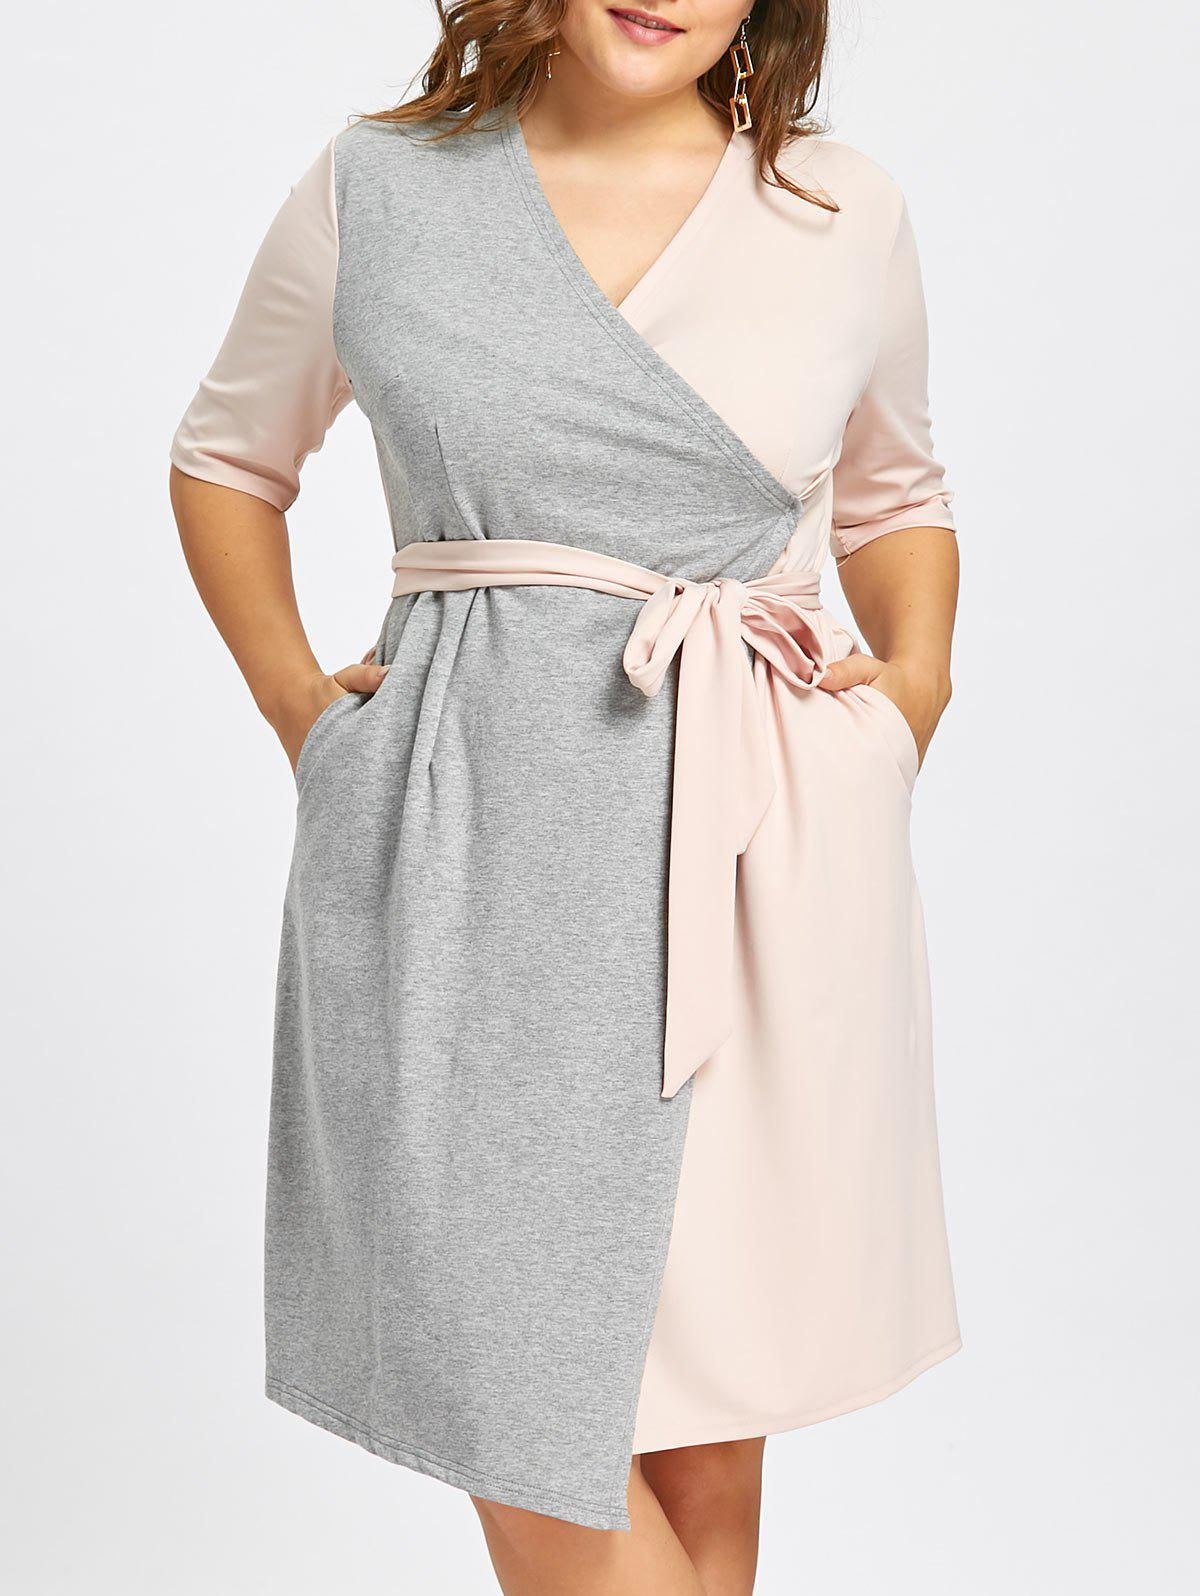 Self-tie Plus Size Two Tone Surplice Dress with Slit - PINK/GREY 7XL